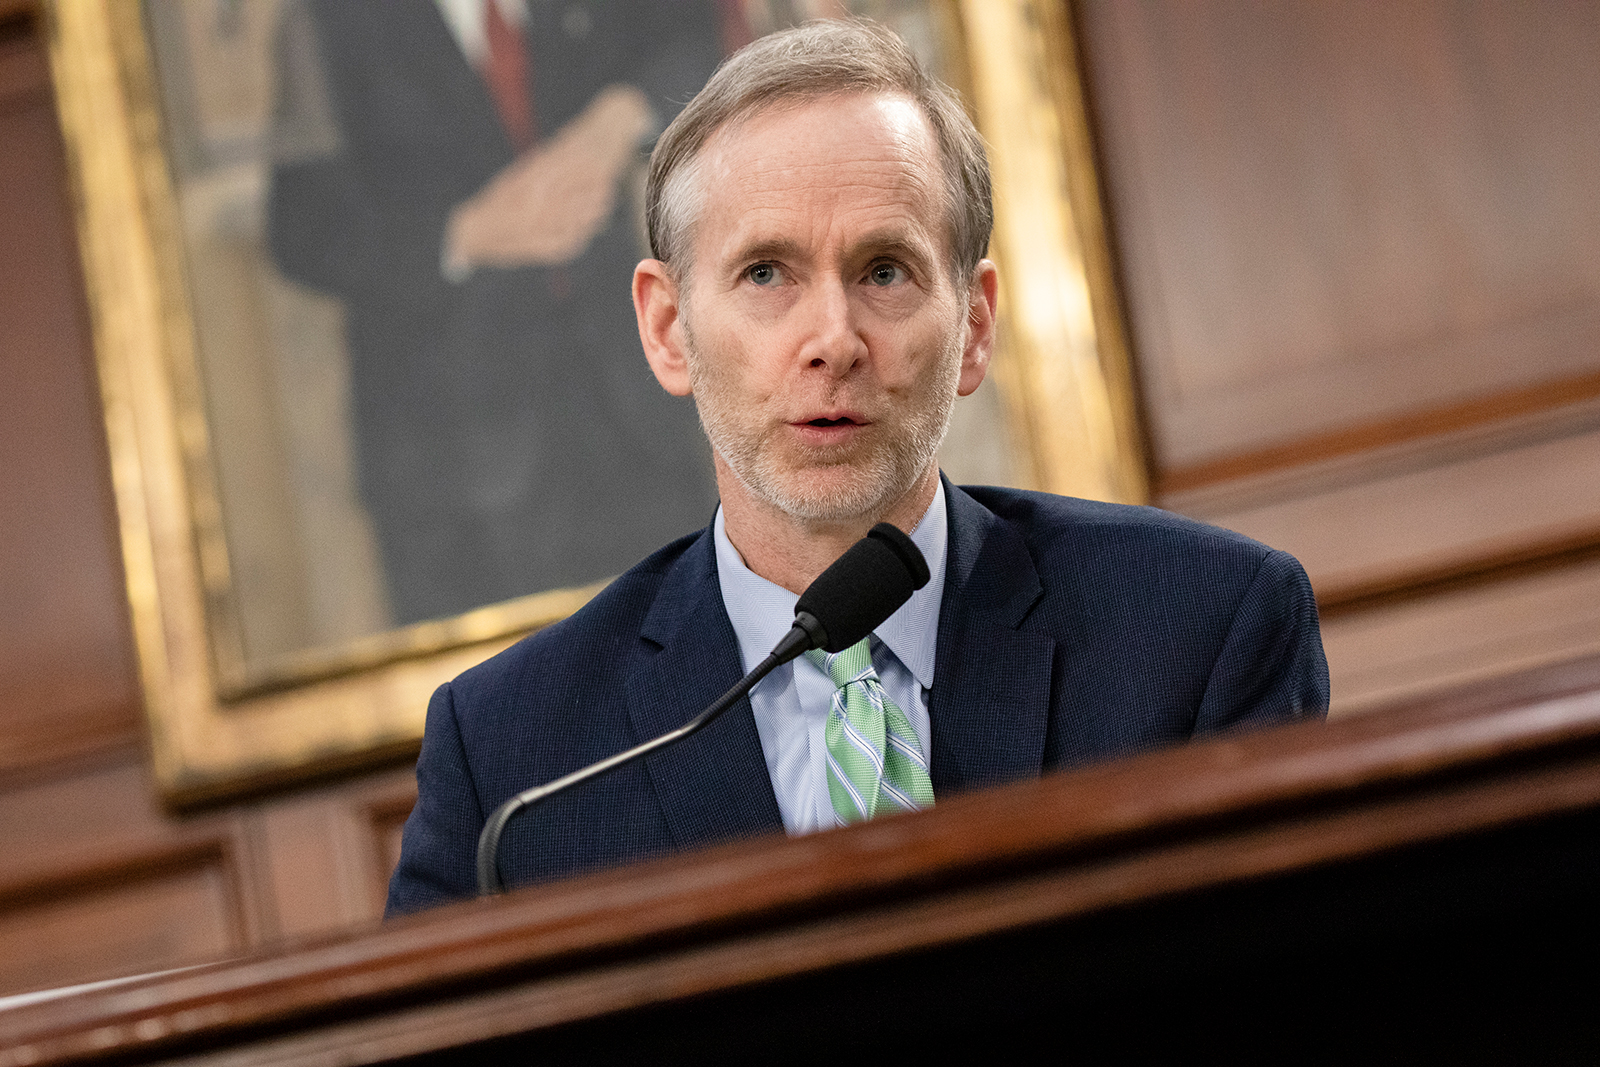 Dr. Tom Inglesby, the director of the Bloomberg School's Center for Health Security, speaks during a briefing Covid-19 developments on Capitol Hill in Washington, on March 6.